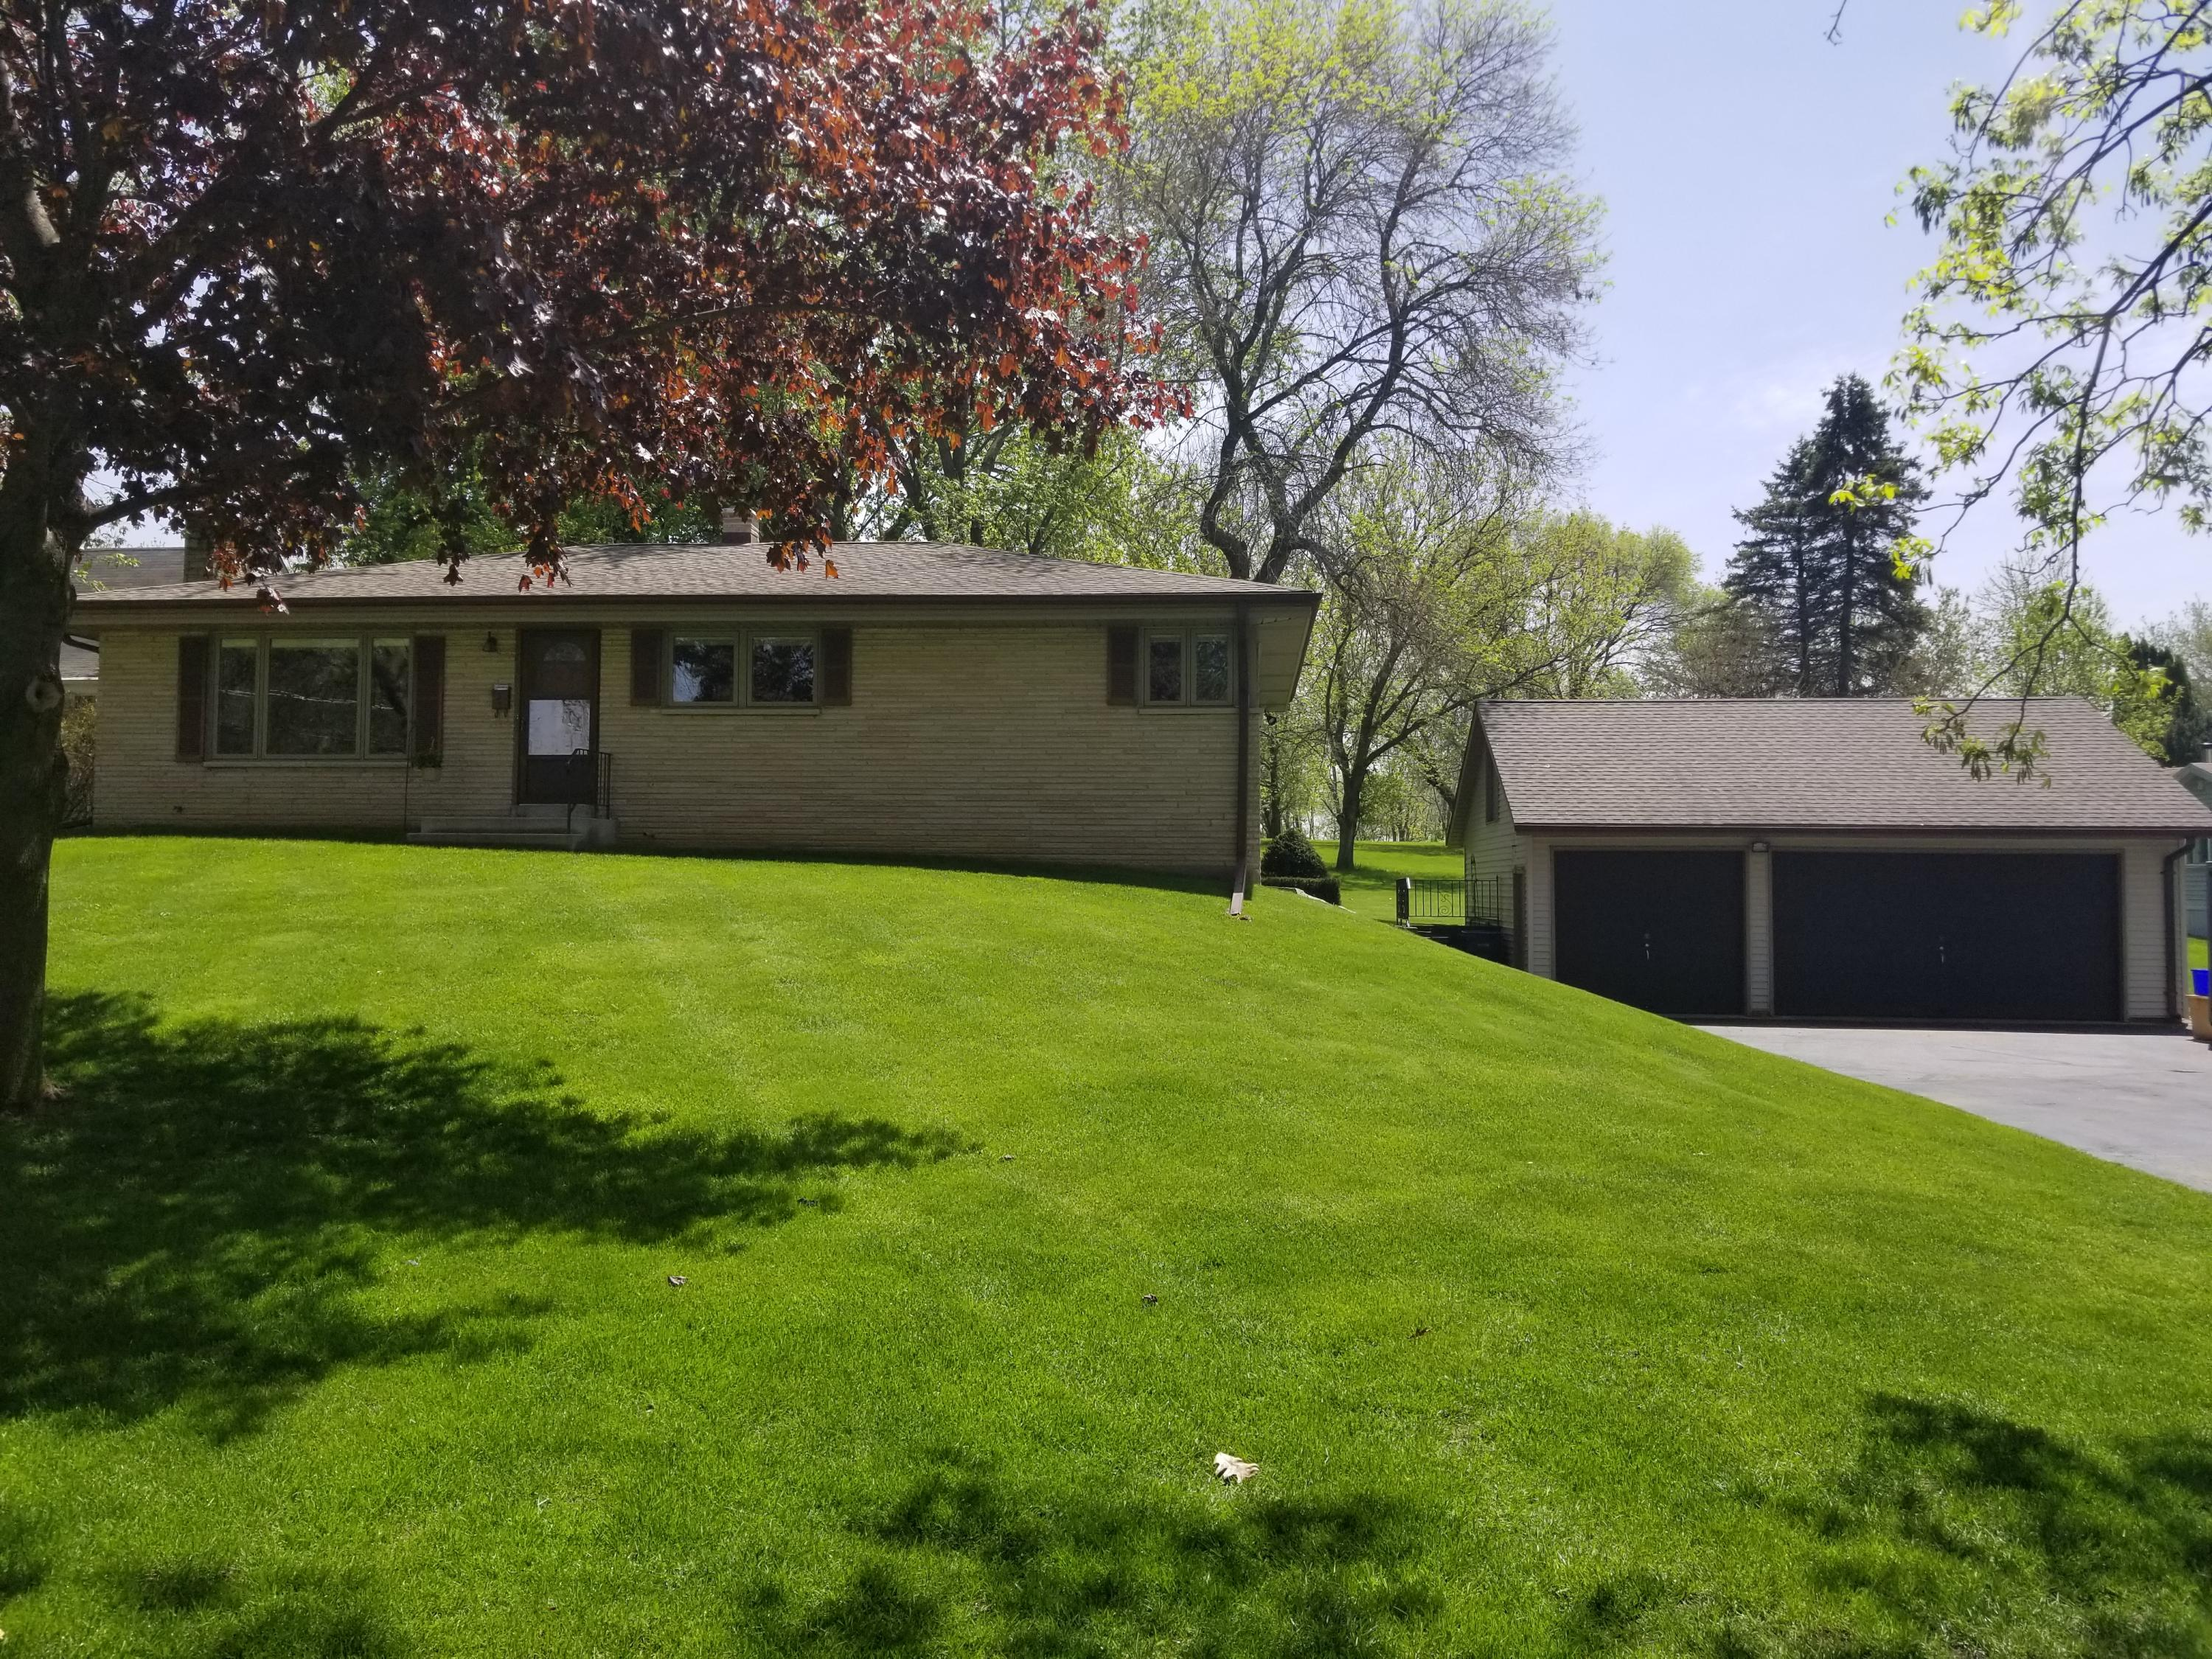 614 Wisconsin Ave, Pewaukee, Wisconsin 53072, 3 Bedrooms Bedrooms, 7 Rooms Rooms,1 BathroomBathrooms,Single-Family,For Sale,Wisconsin Ave,1639072